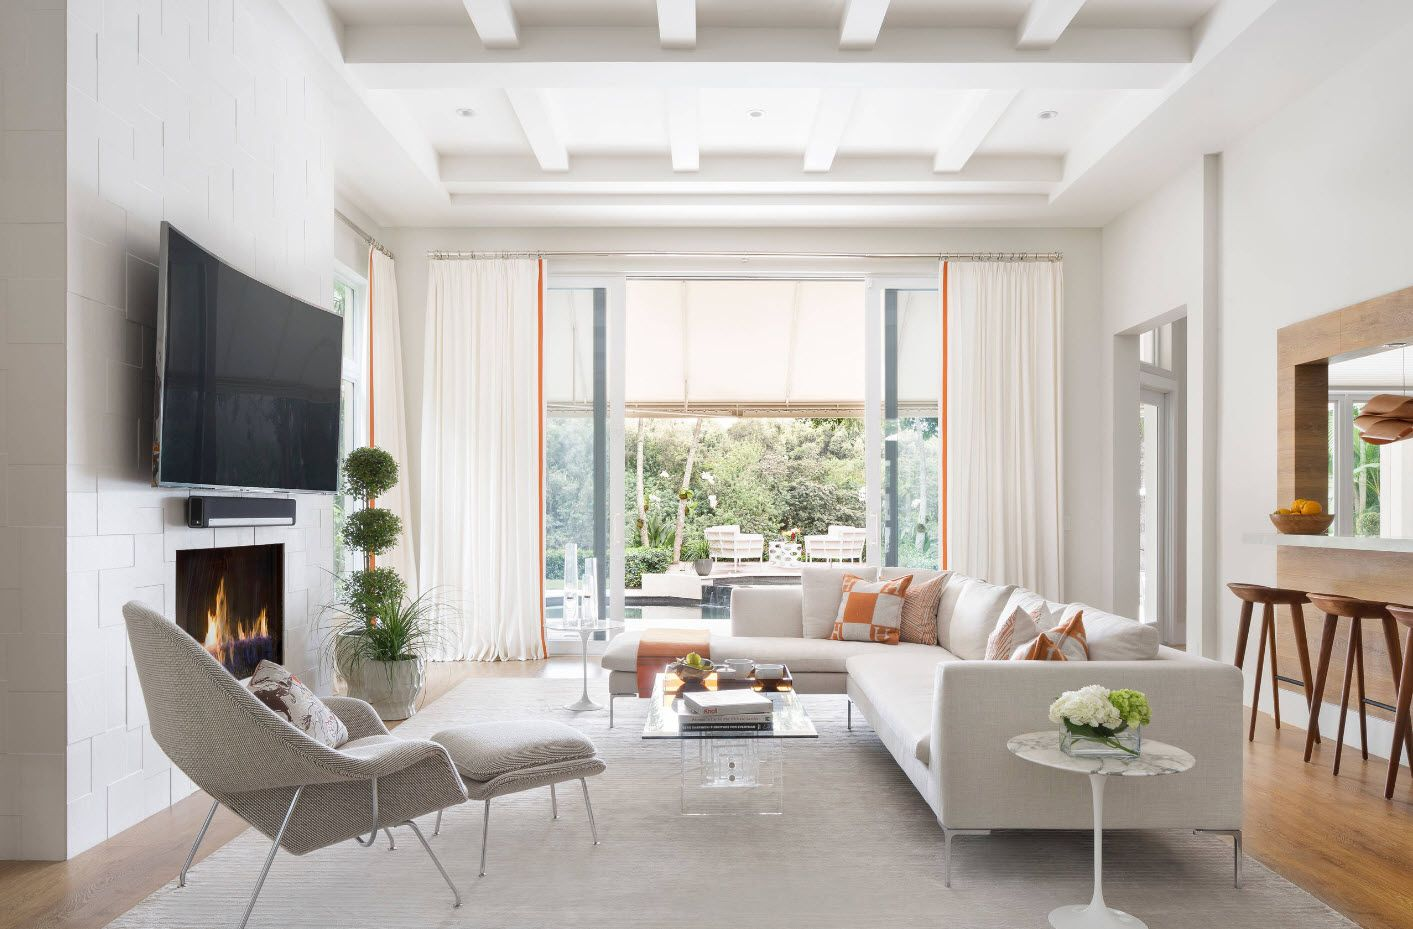 Creating Living Room Interior Inspiration Design Ideas 2017. White open beams of the ceiling in loft whitewashed interior